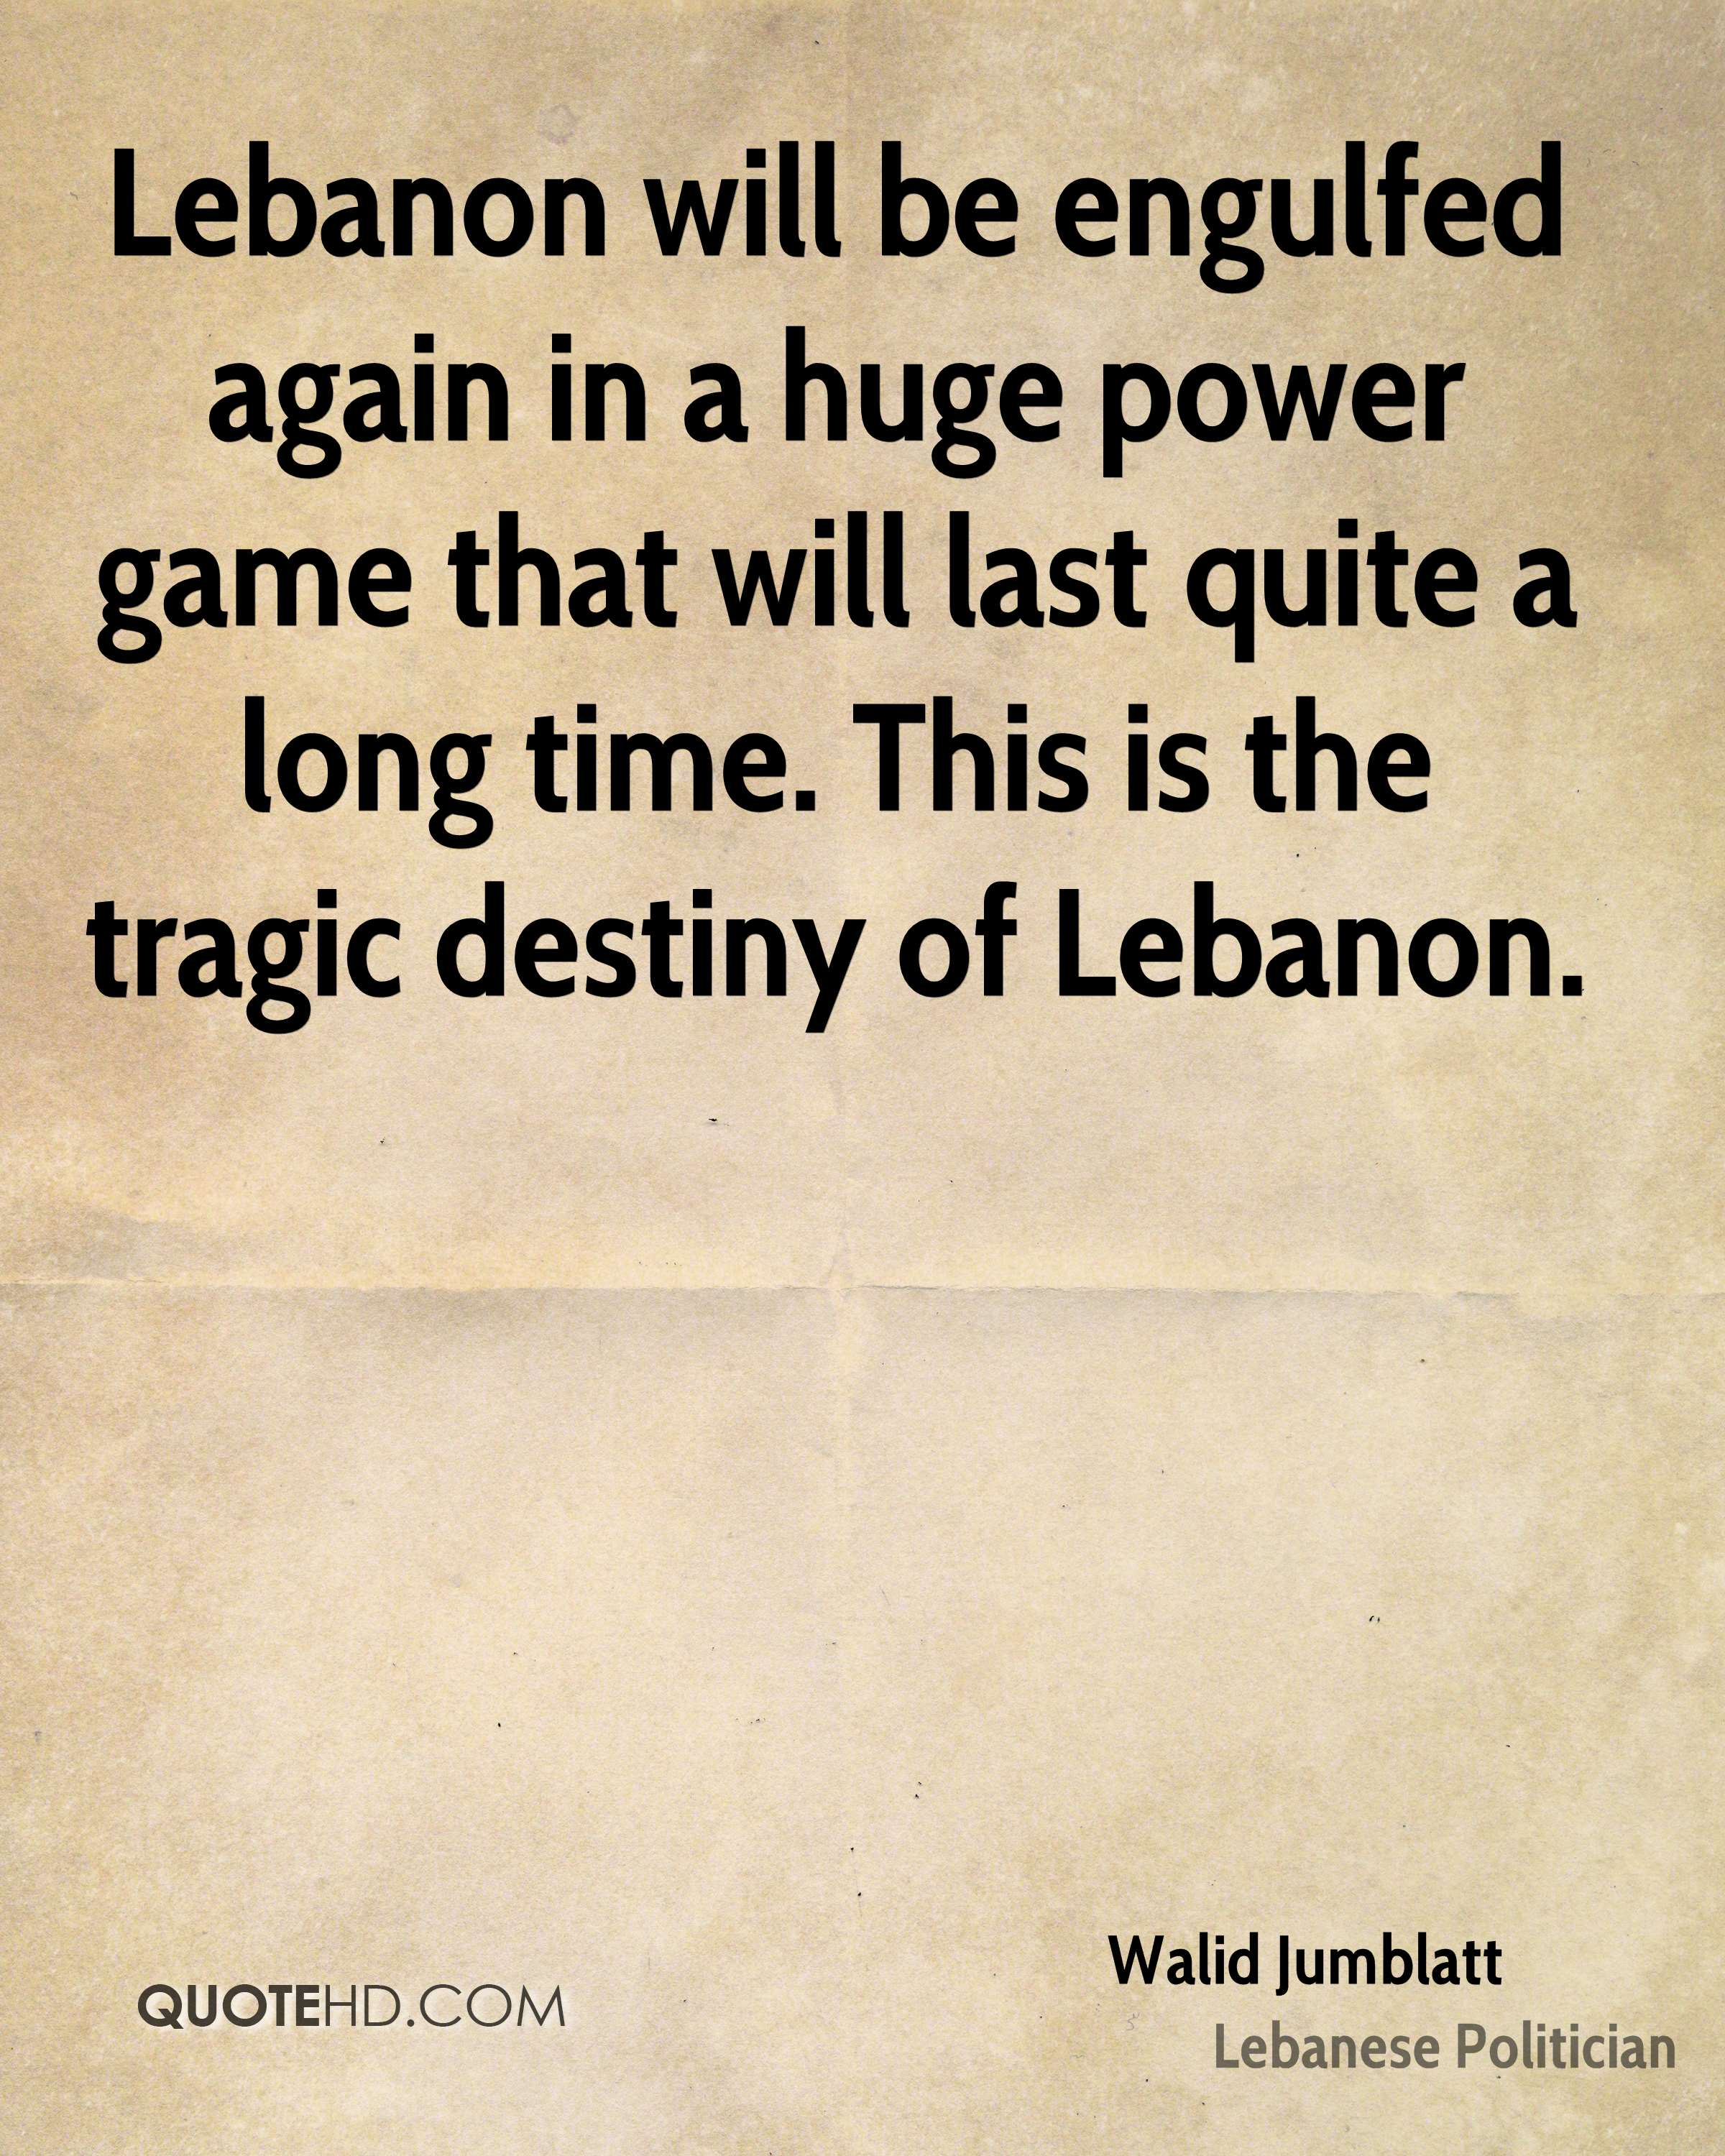 Lebanon will be engulfed again in a huge power game that will last quite a long time. This is the tragic destiny of Lebanon.